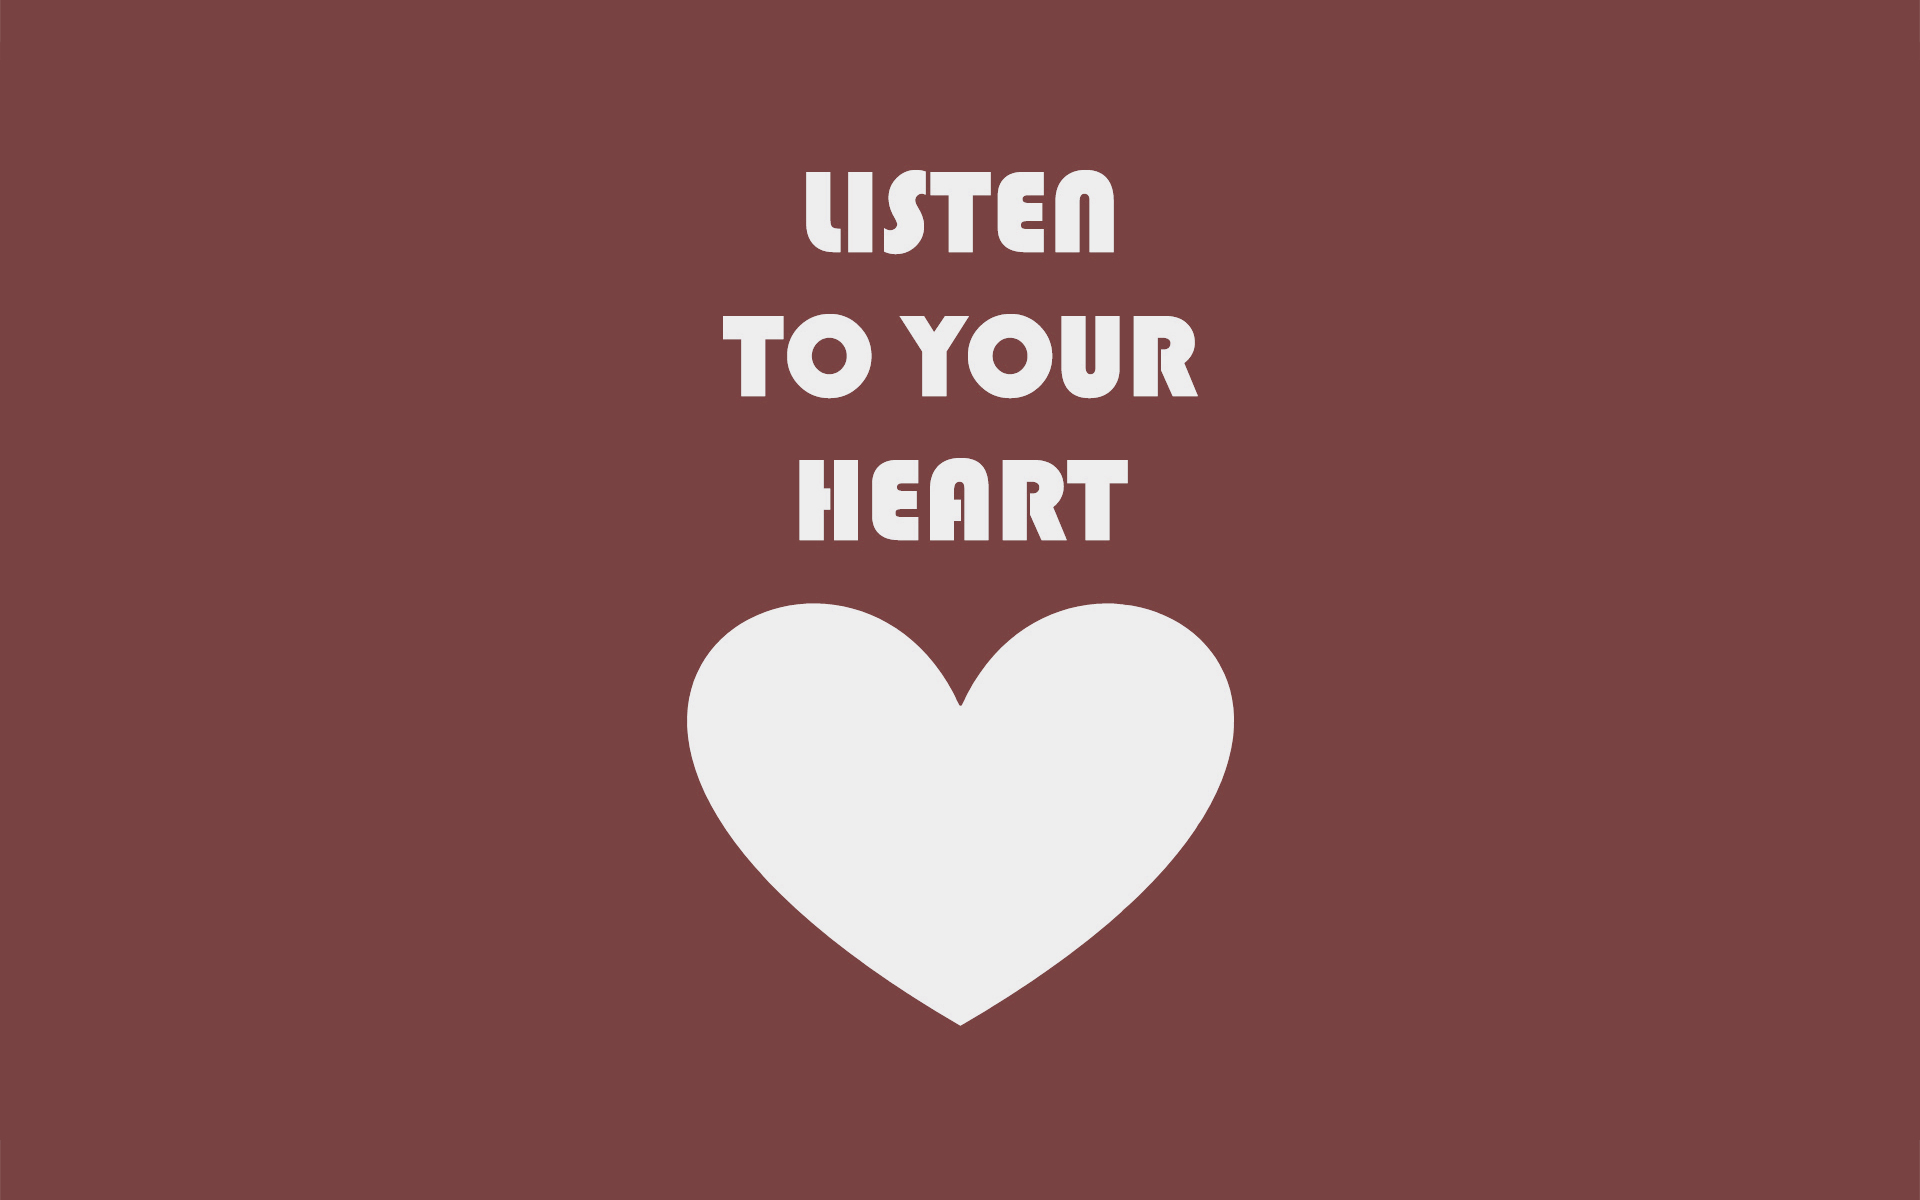 Five Reasons Why You Should Listen to Your Heart